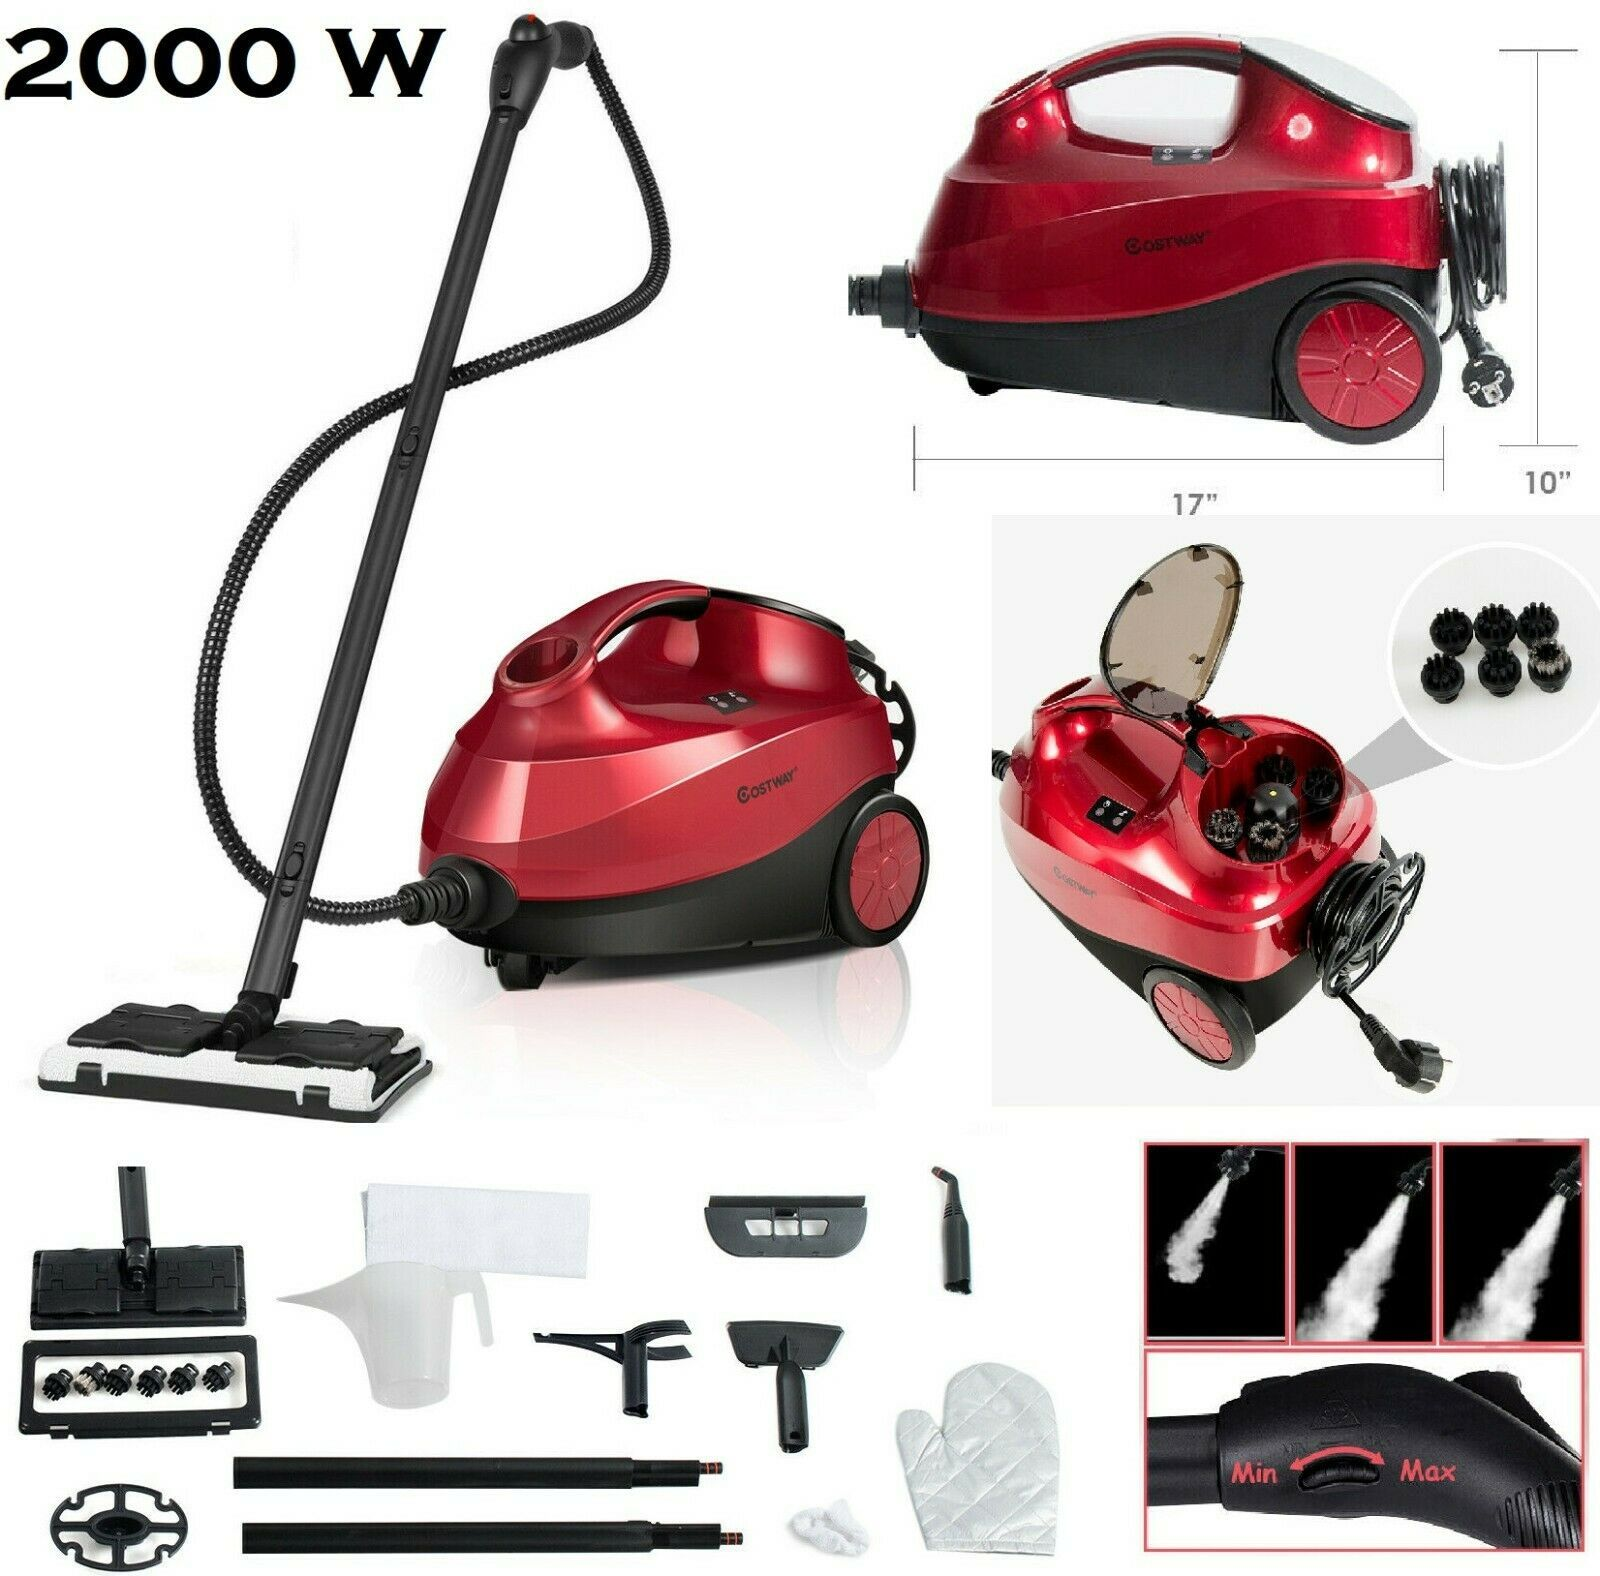 Steam Cleaner Heavy Duty Carpet Cleaner Mop Multi Purpose Cleaning Home 2000w In 2020 Steam Cleaners Carpet Cleaners Cleaners